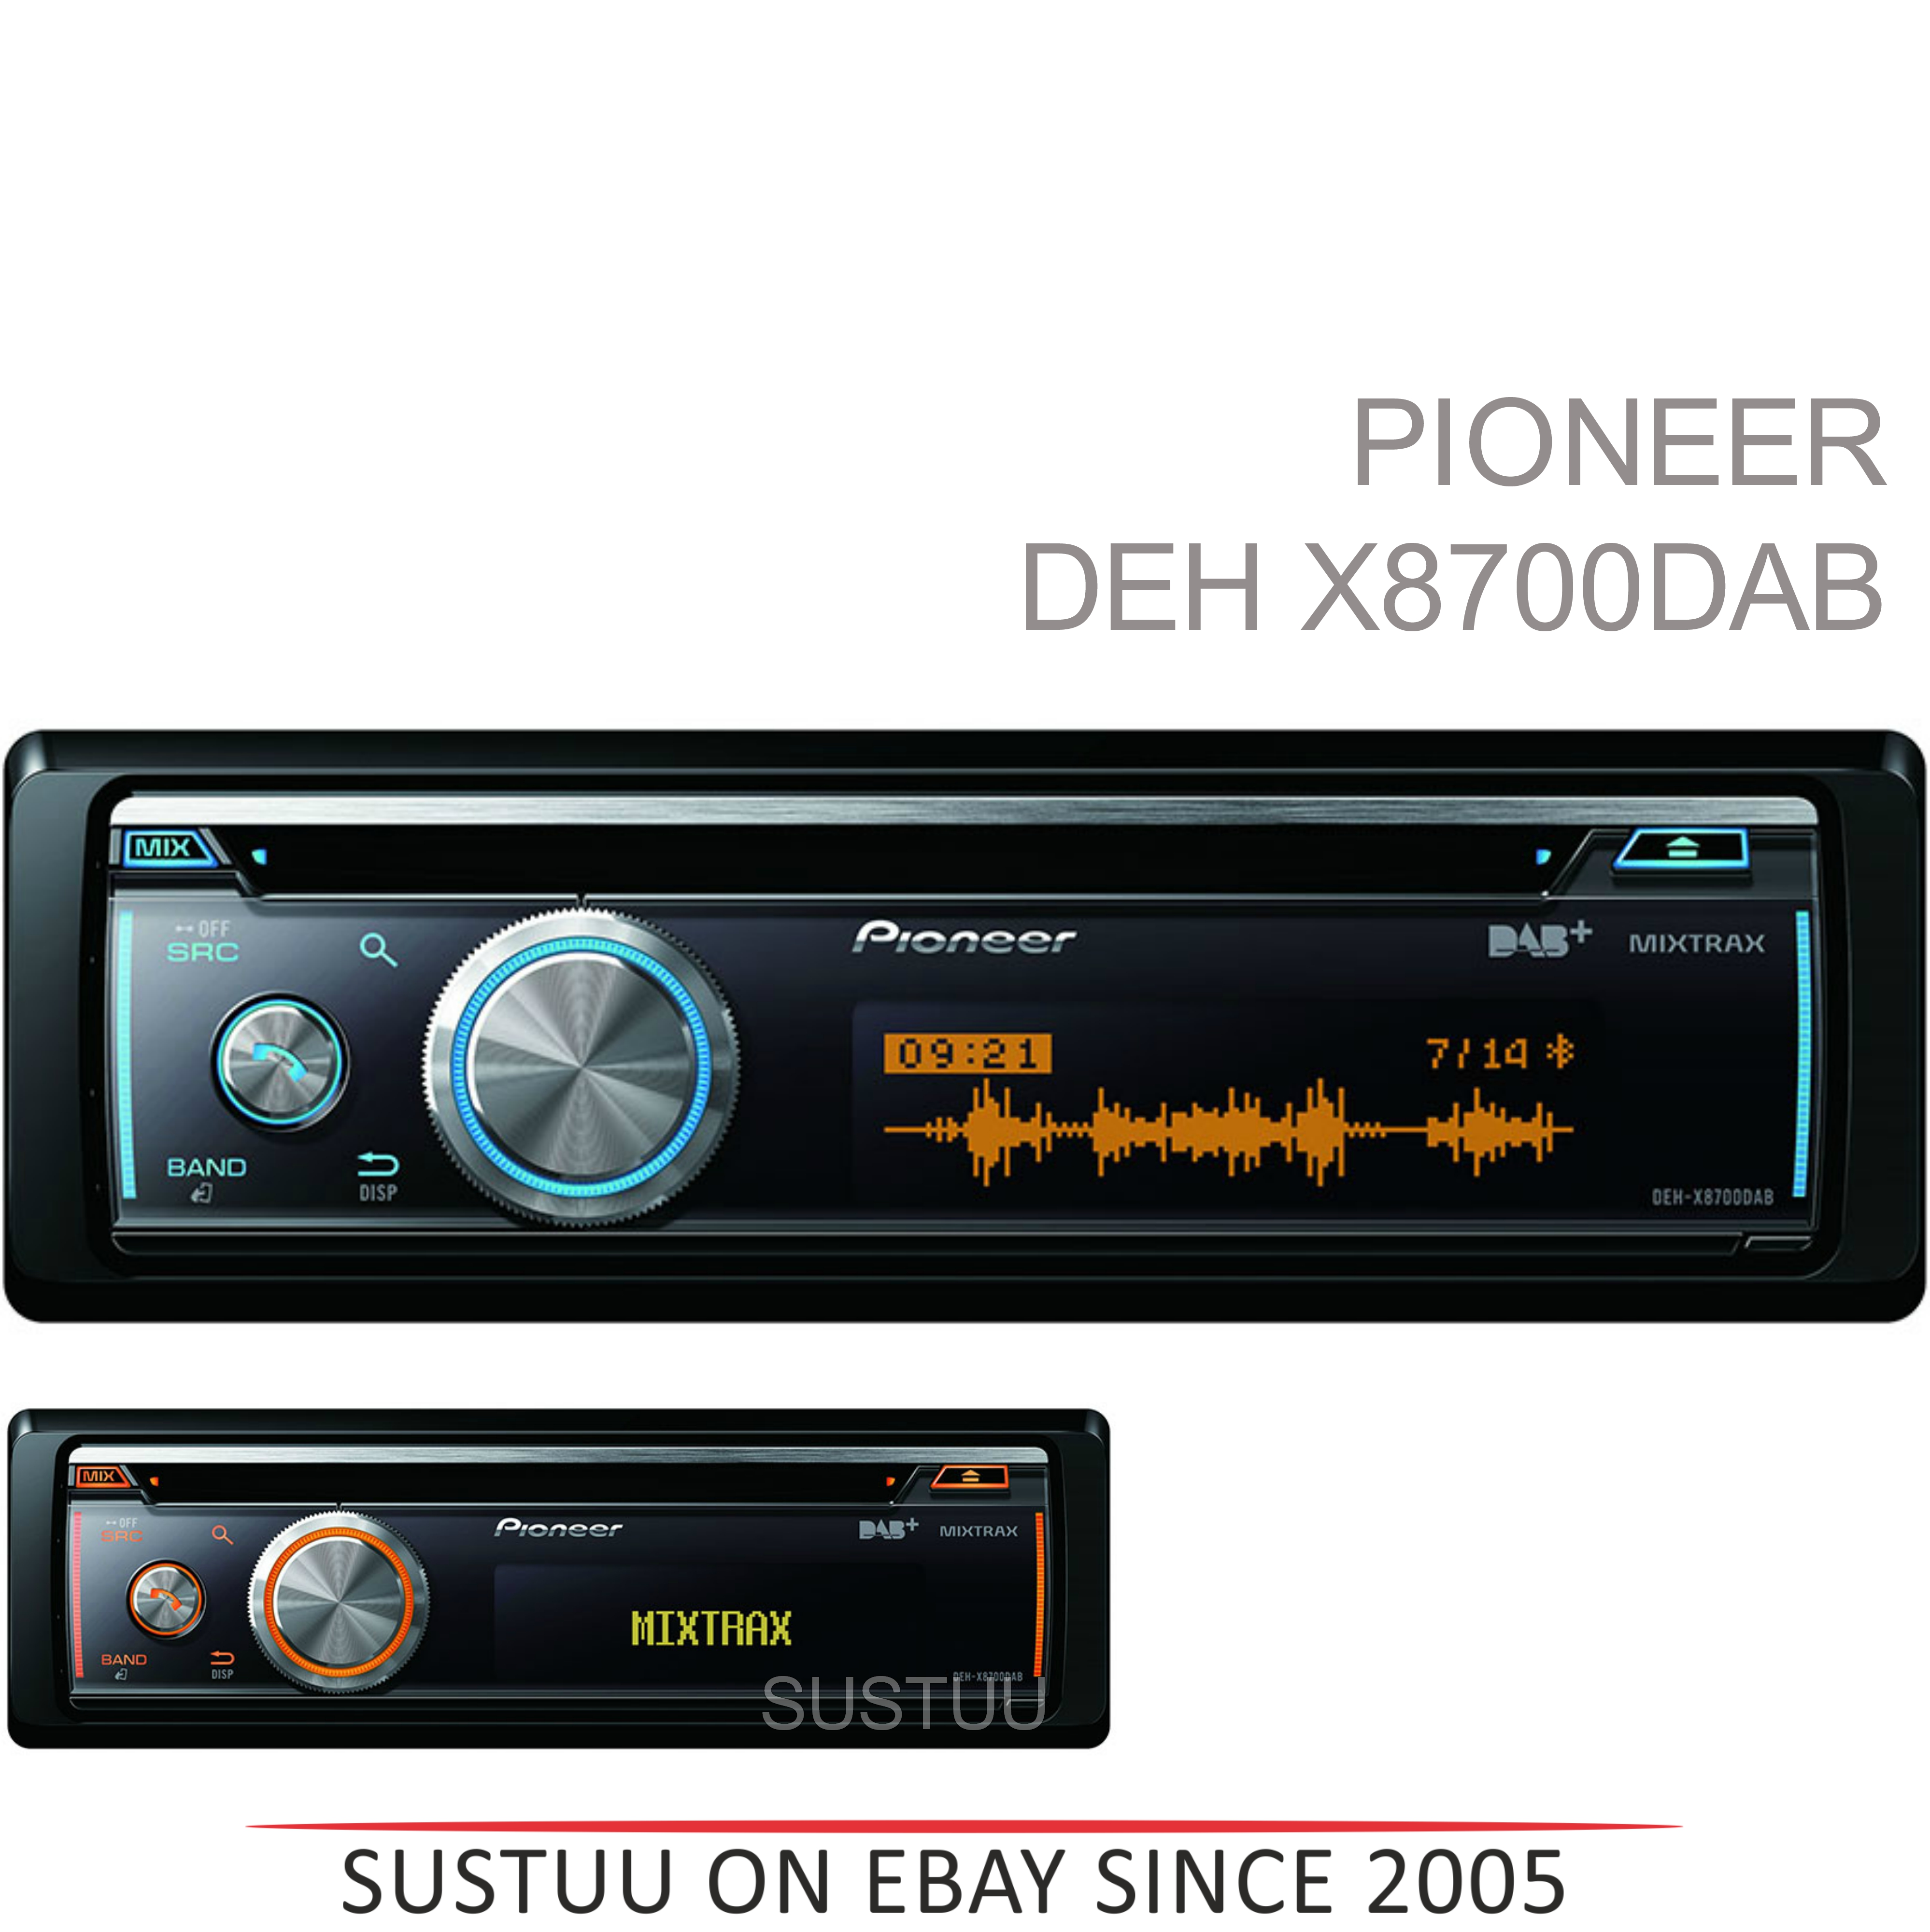 Pioneer DEH X8700DAB In Car stereo|DAB+|CD|USB|Aux|Bluetooth|iPod-iPhone-Android